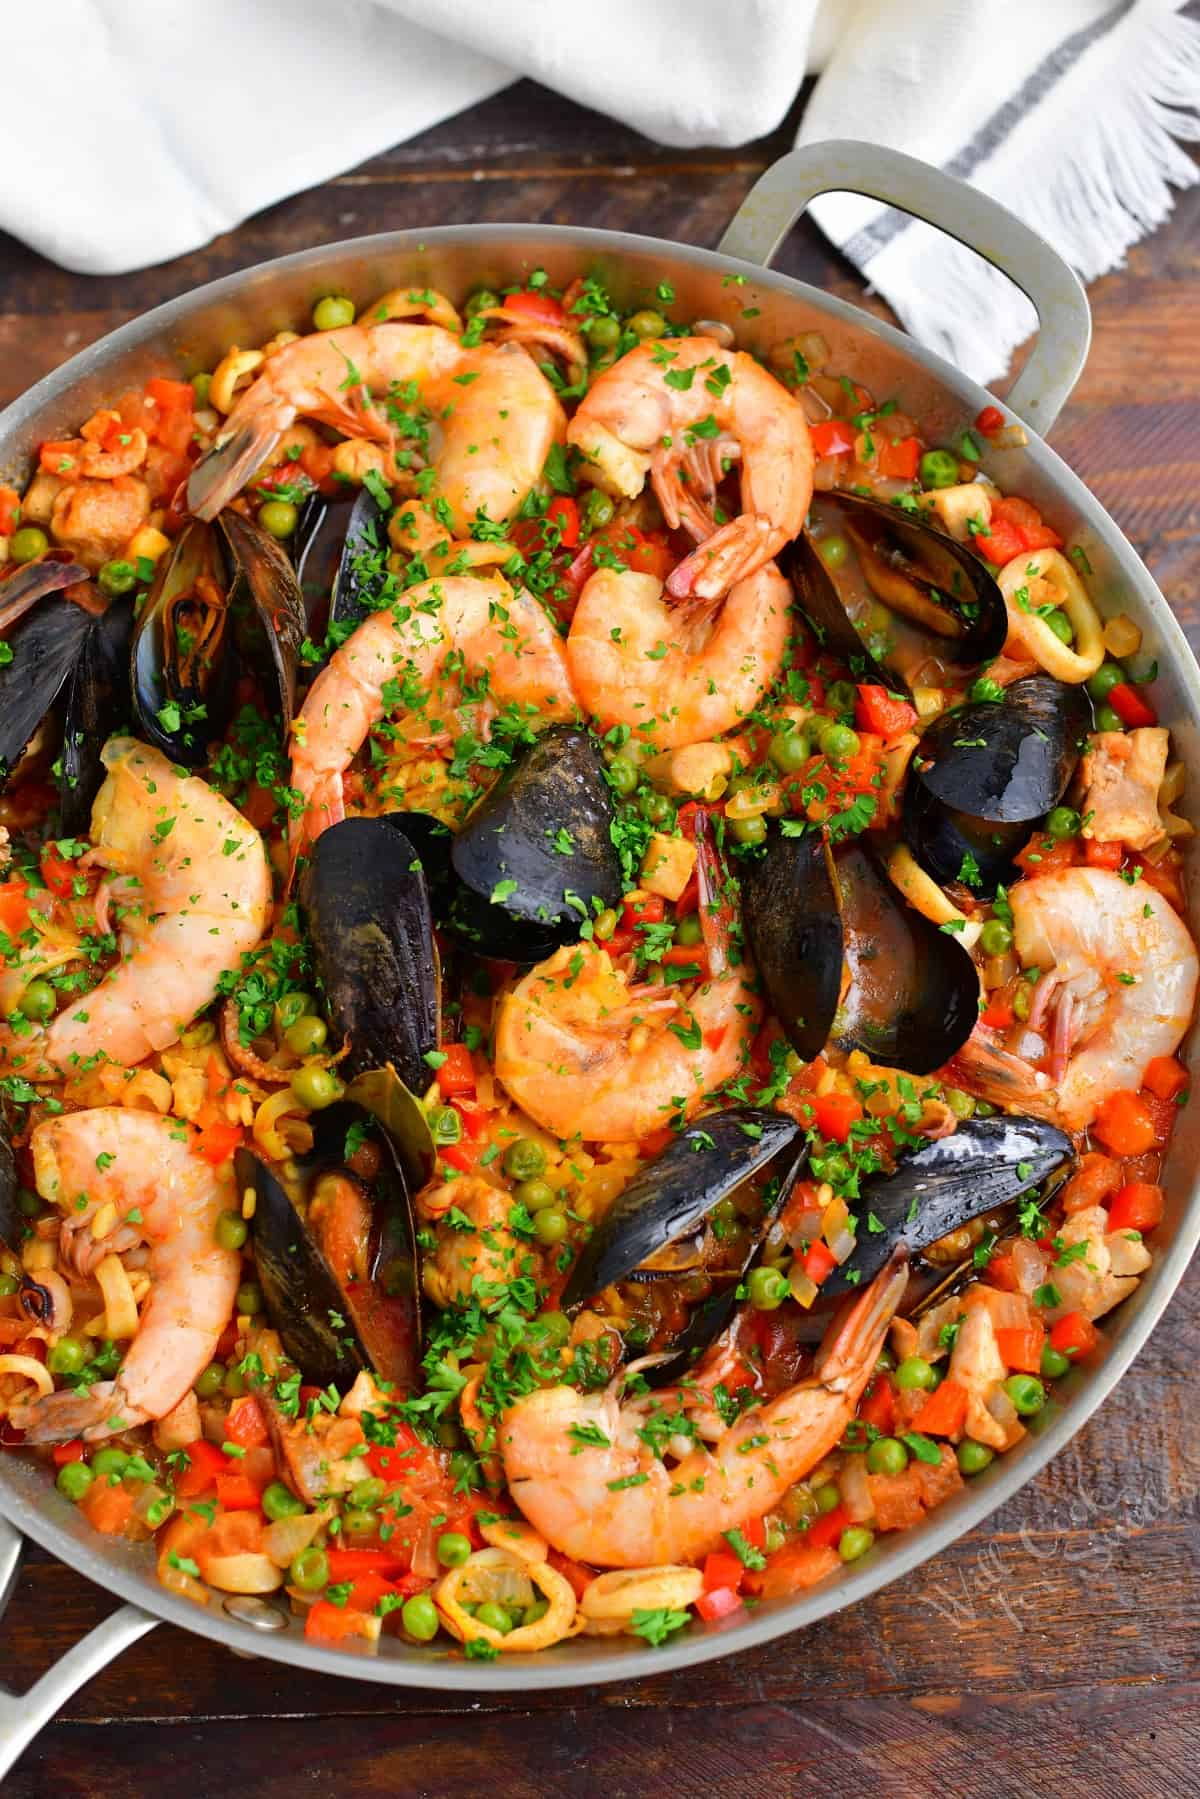 A large pan is filled to the brim with freshly cooked paella.